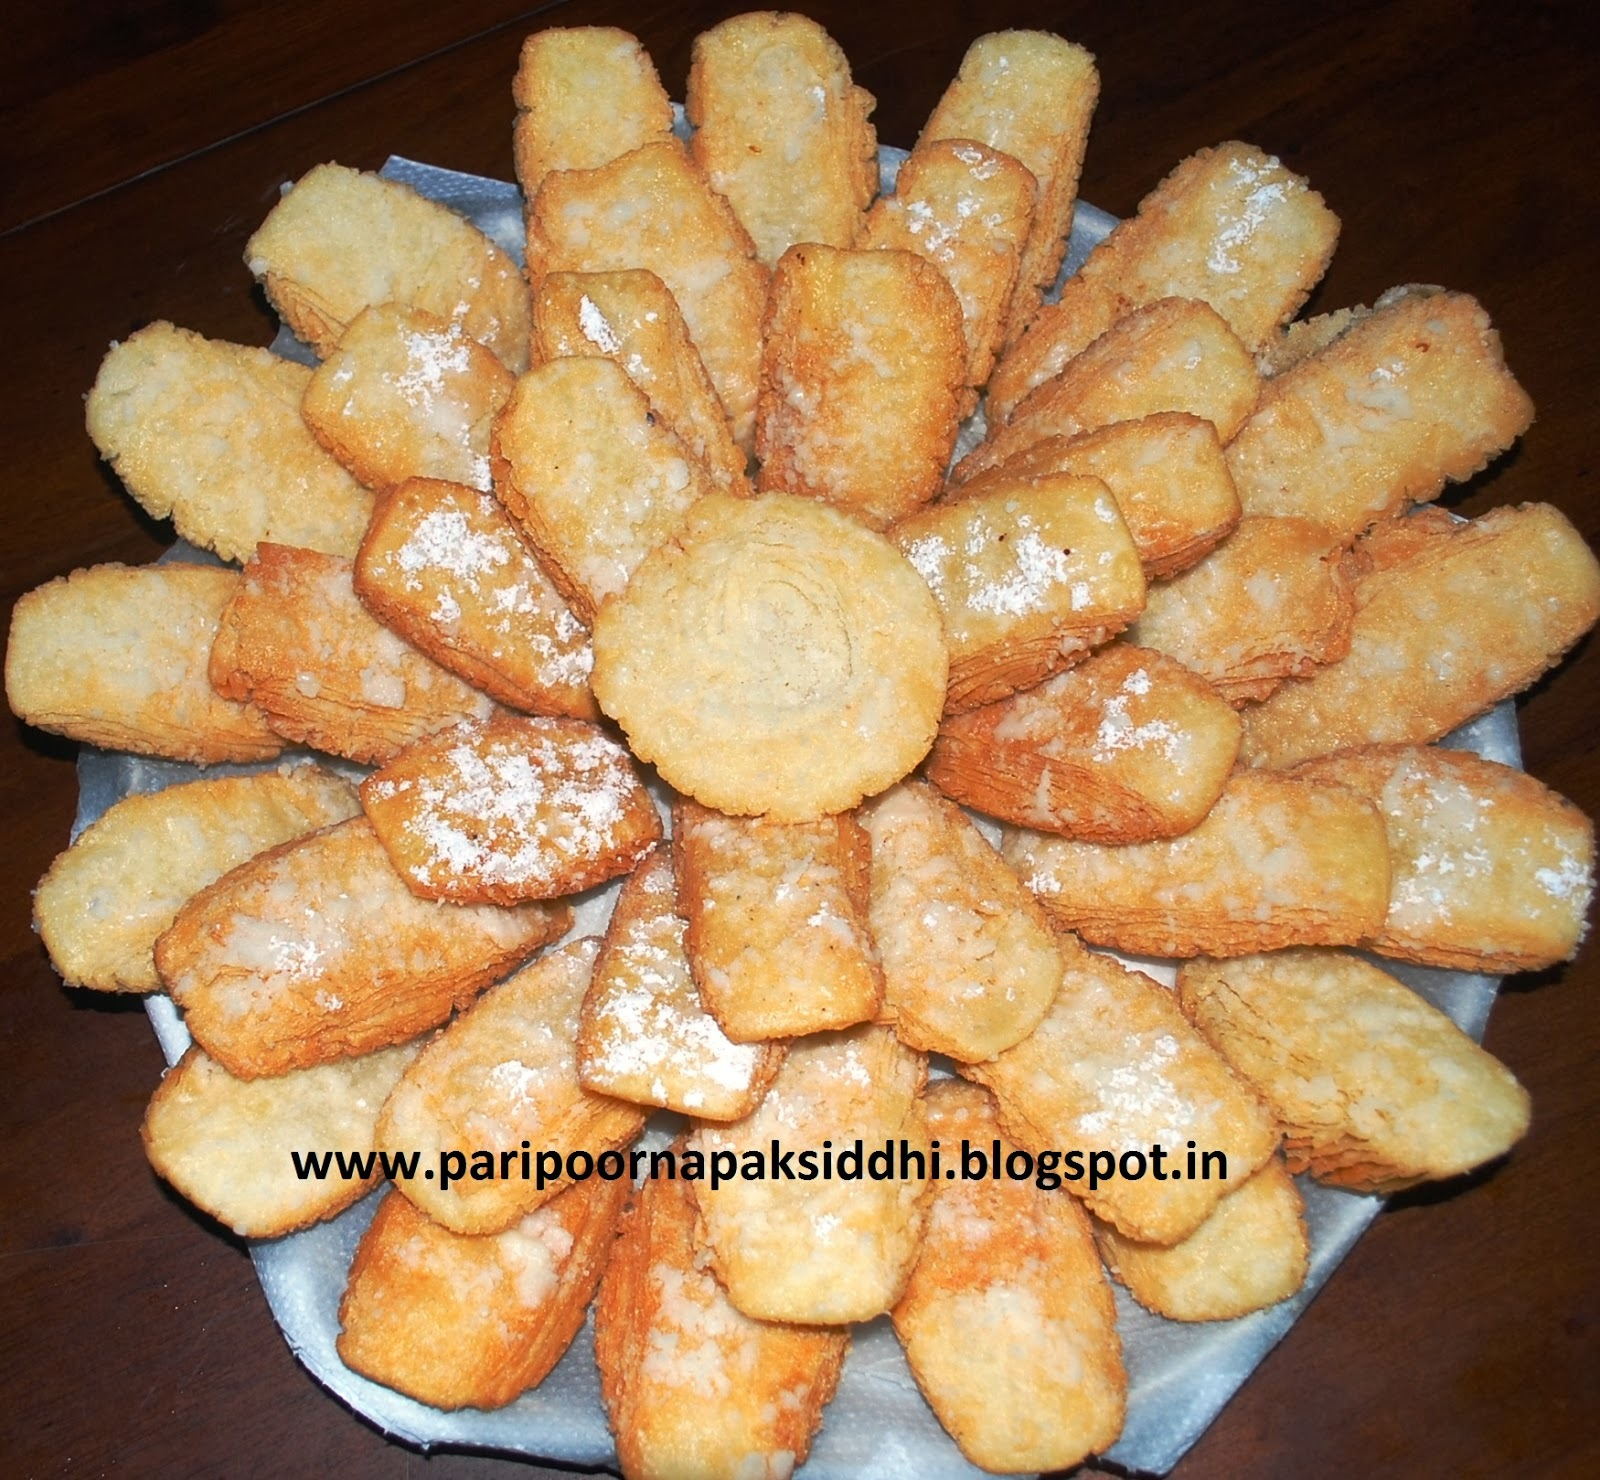 CHIROTE / INDIAN FRIED FLAKY PASTRY